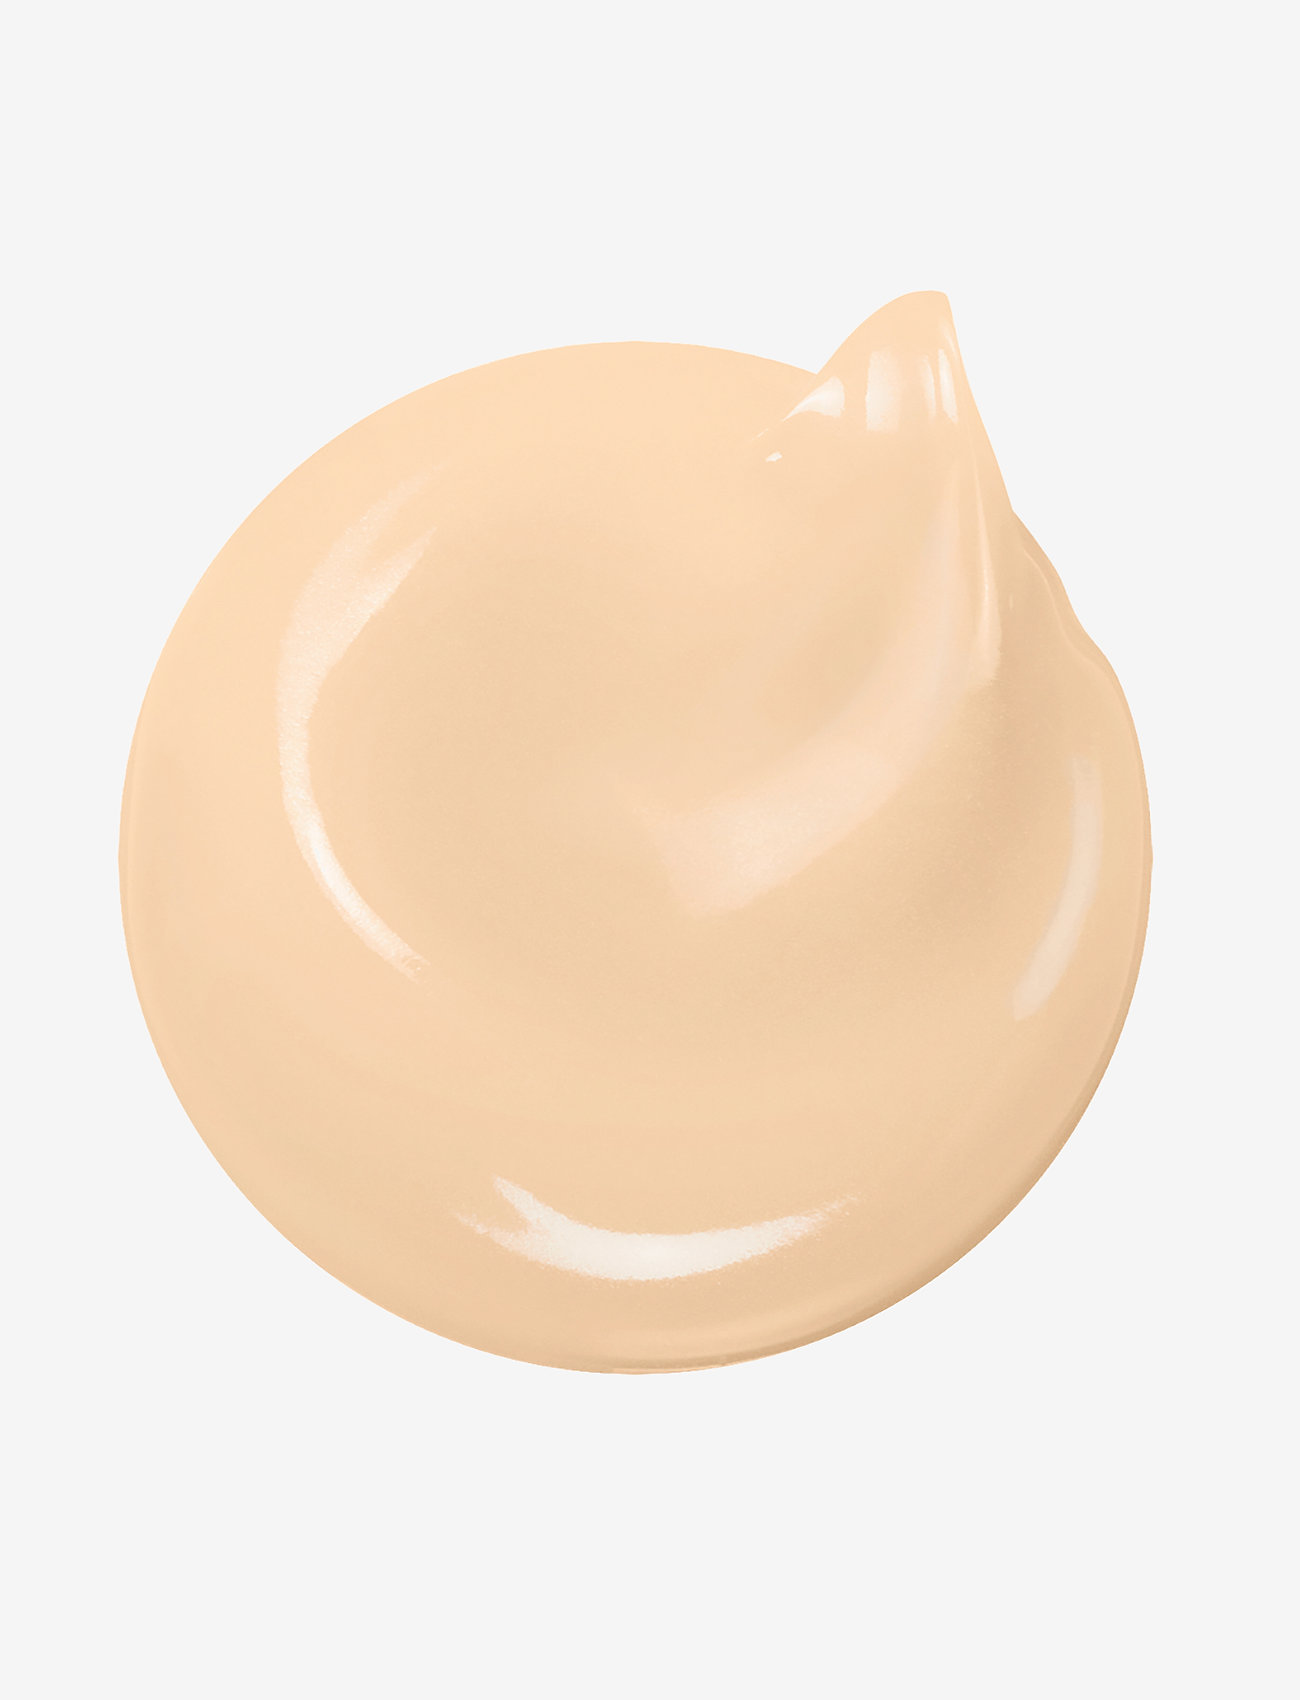 Helena Rubinstein - Prodigy Cellglow Luminous Tint Concentrate - foundation - 01 - 1